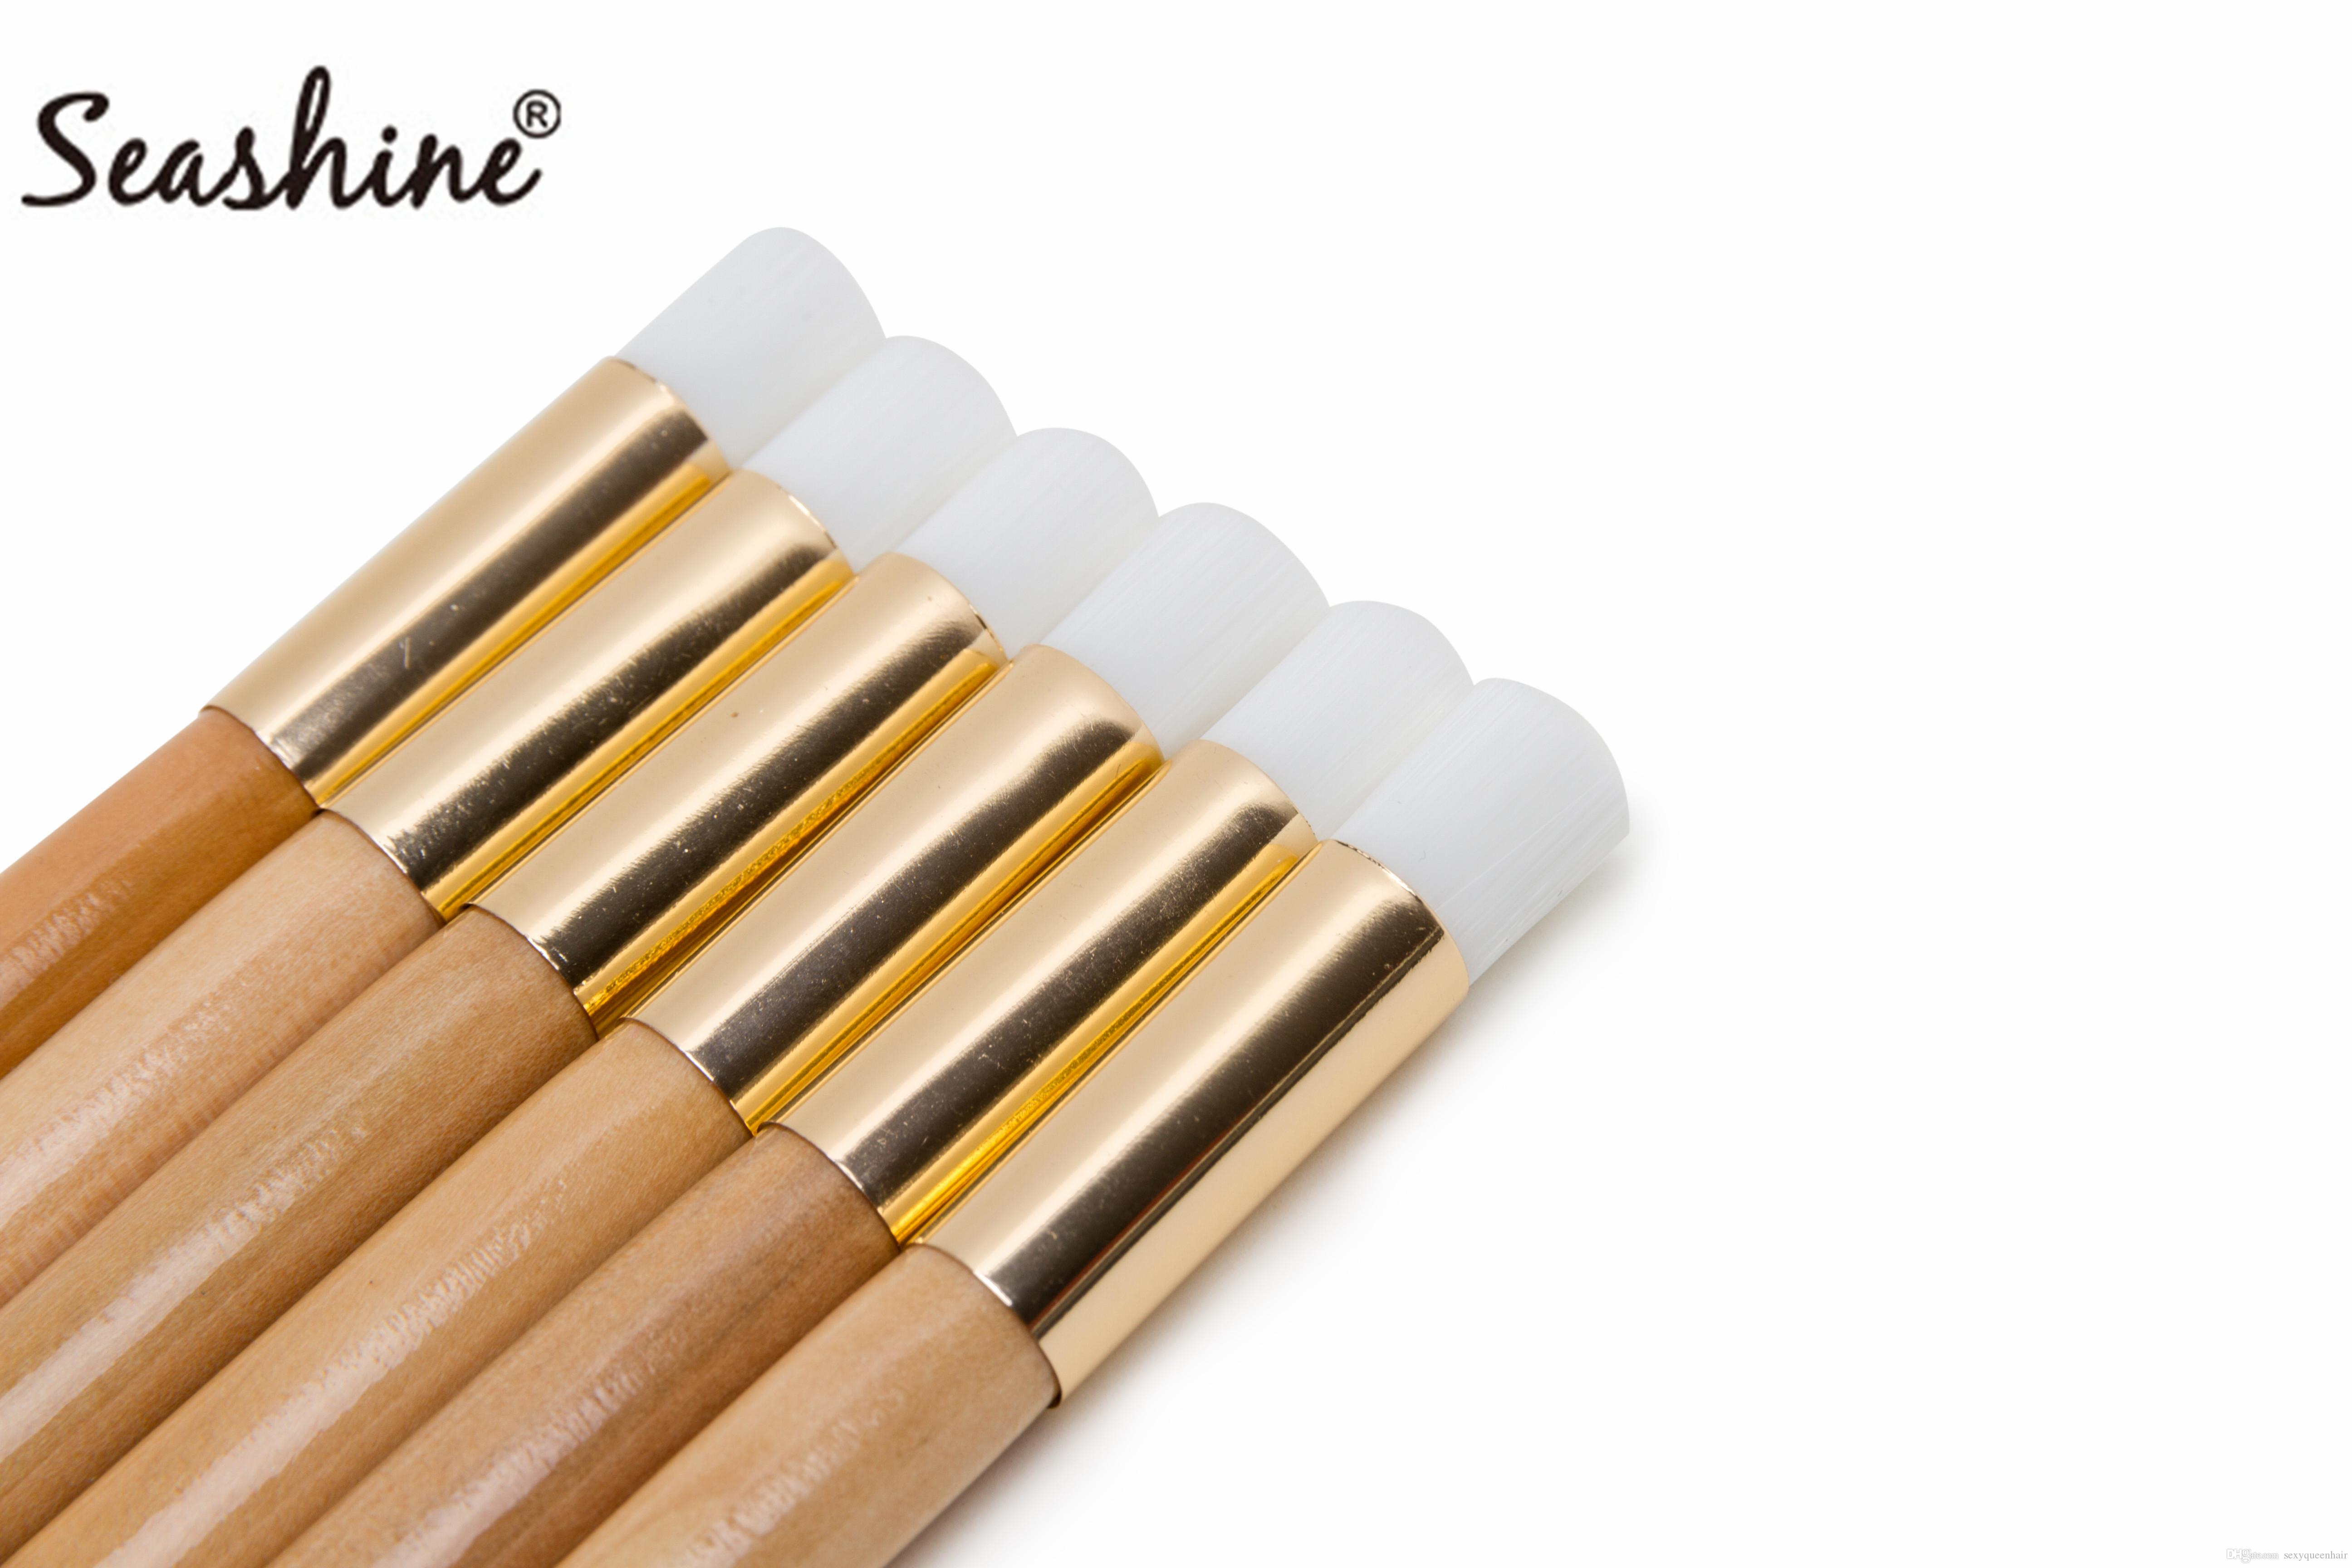 Seashine Horse Hair 10 PCS Wood Cleaning Brush Nose Brush Cleansing Brush Cleaning Use Long Time Factory Whosale Price For Free Shipping